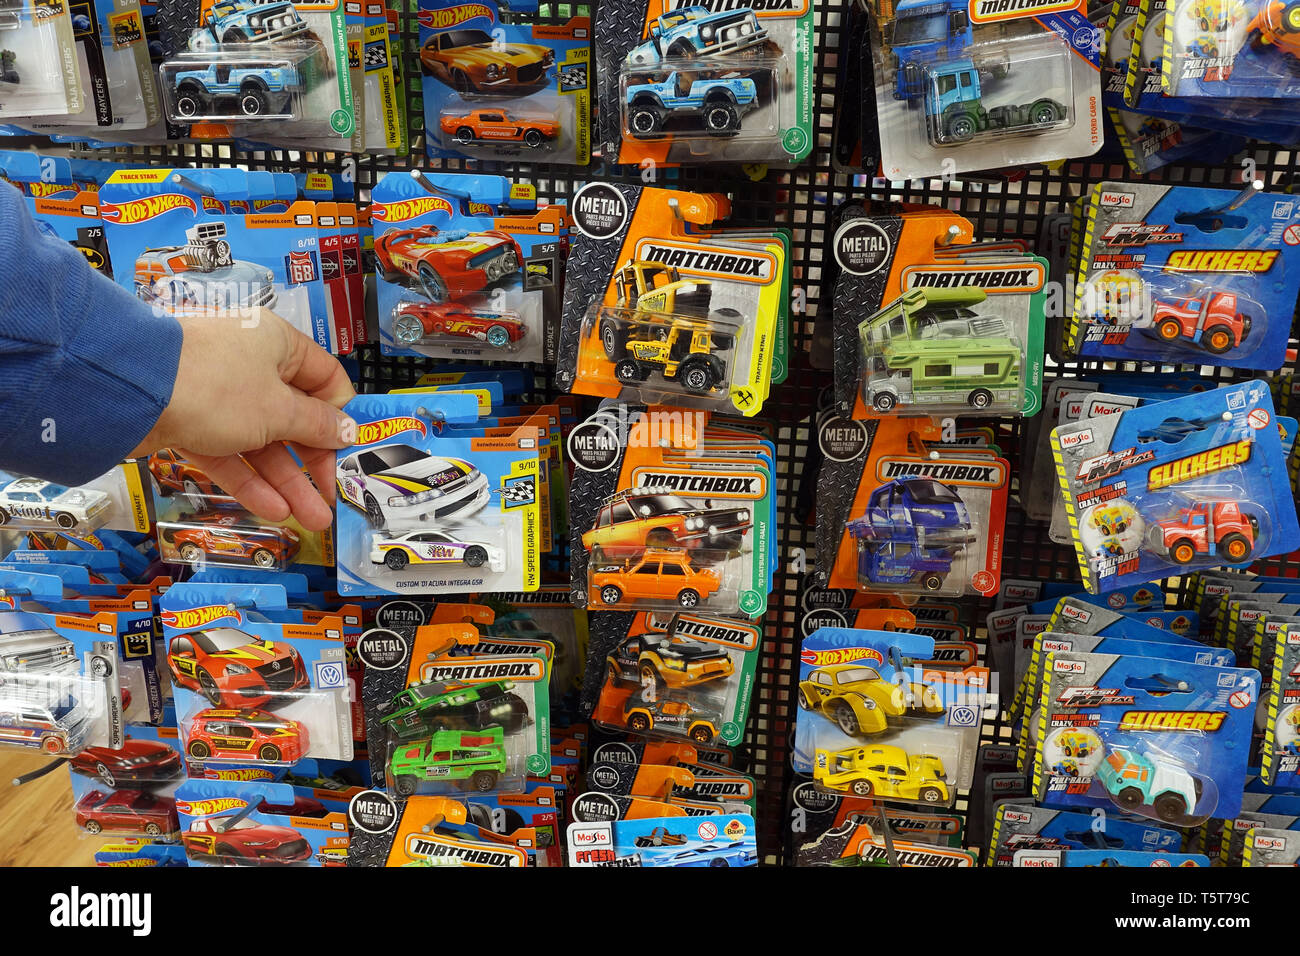 Die-cast toy cars in a blister pack in a store display Stock Photo